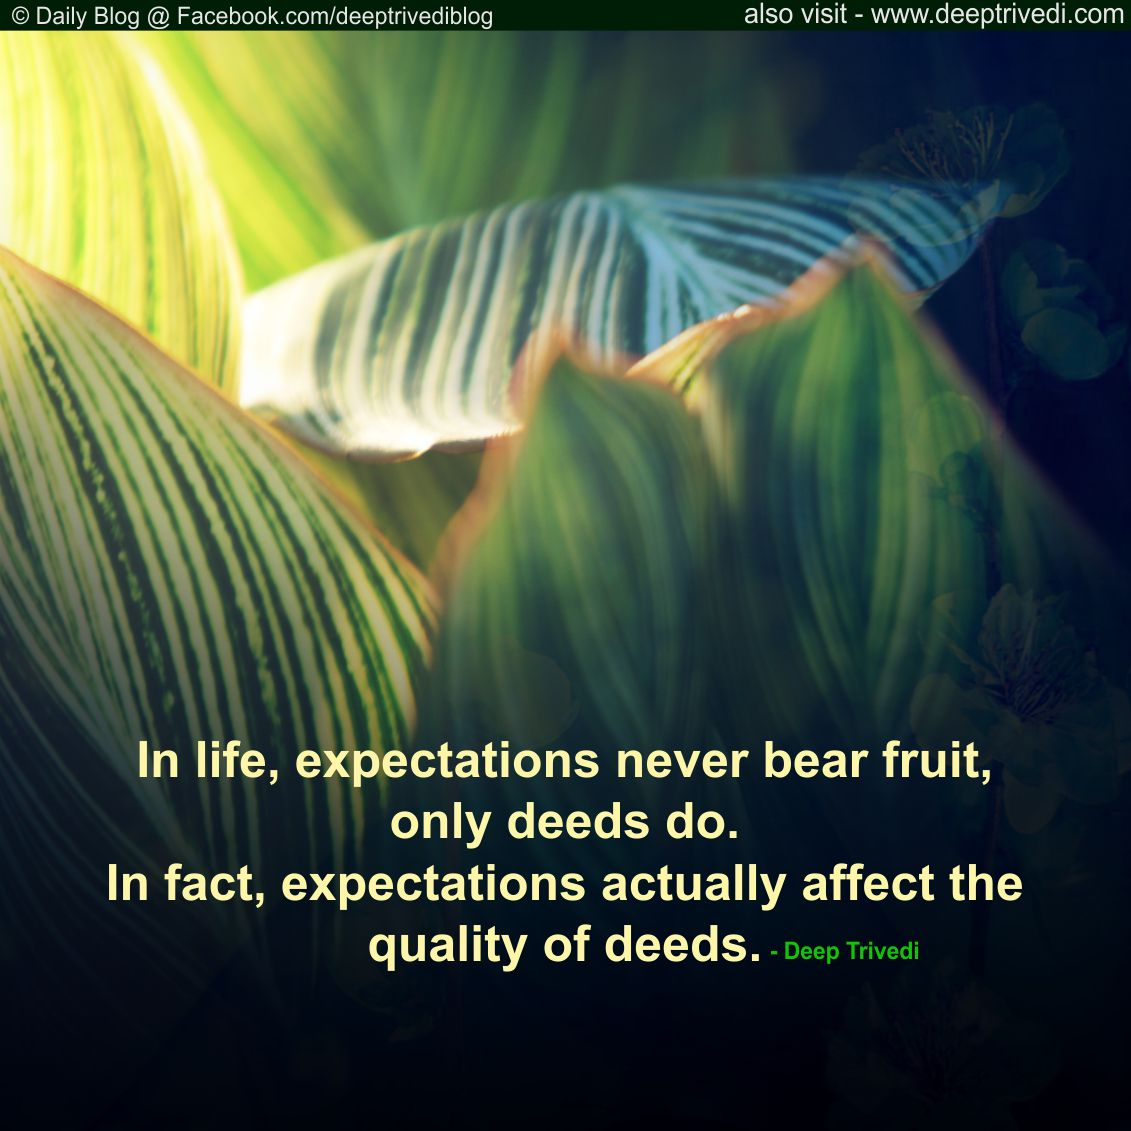 expectations never bear fruit, only deeds do